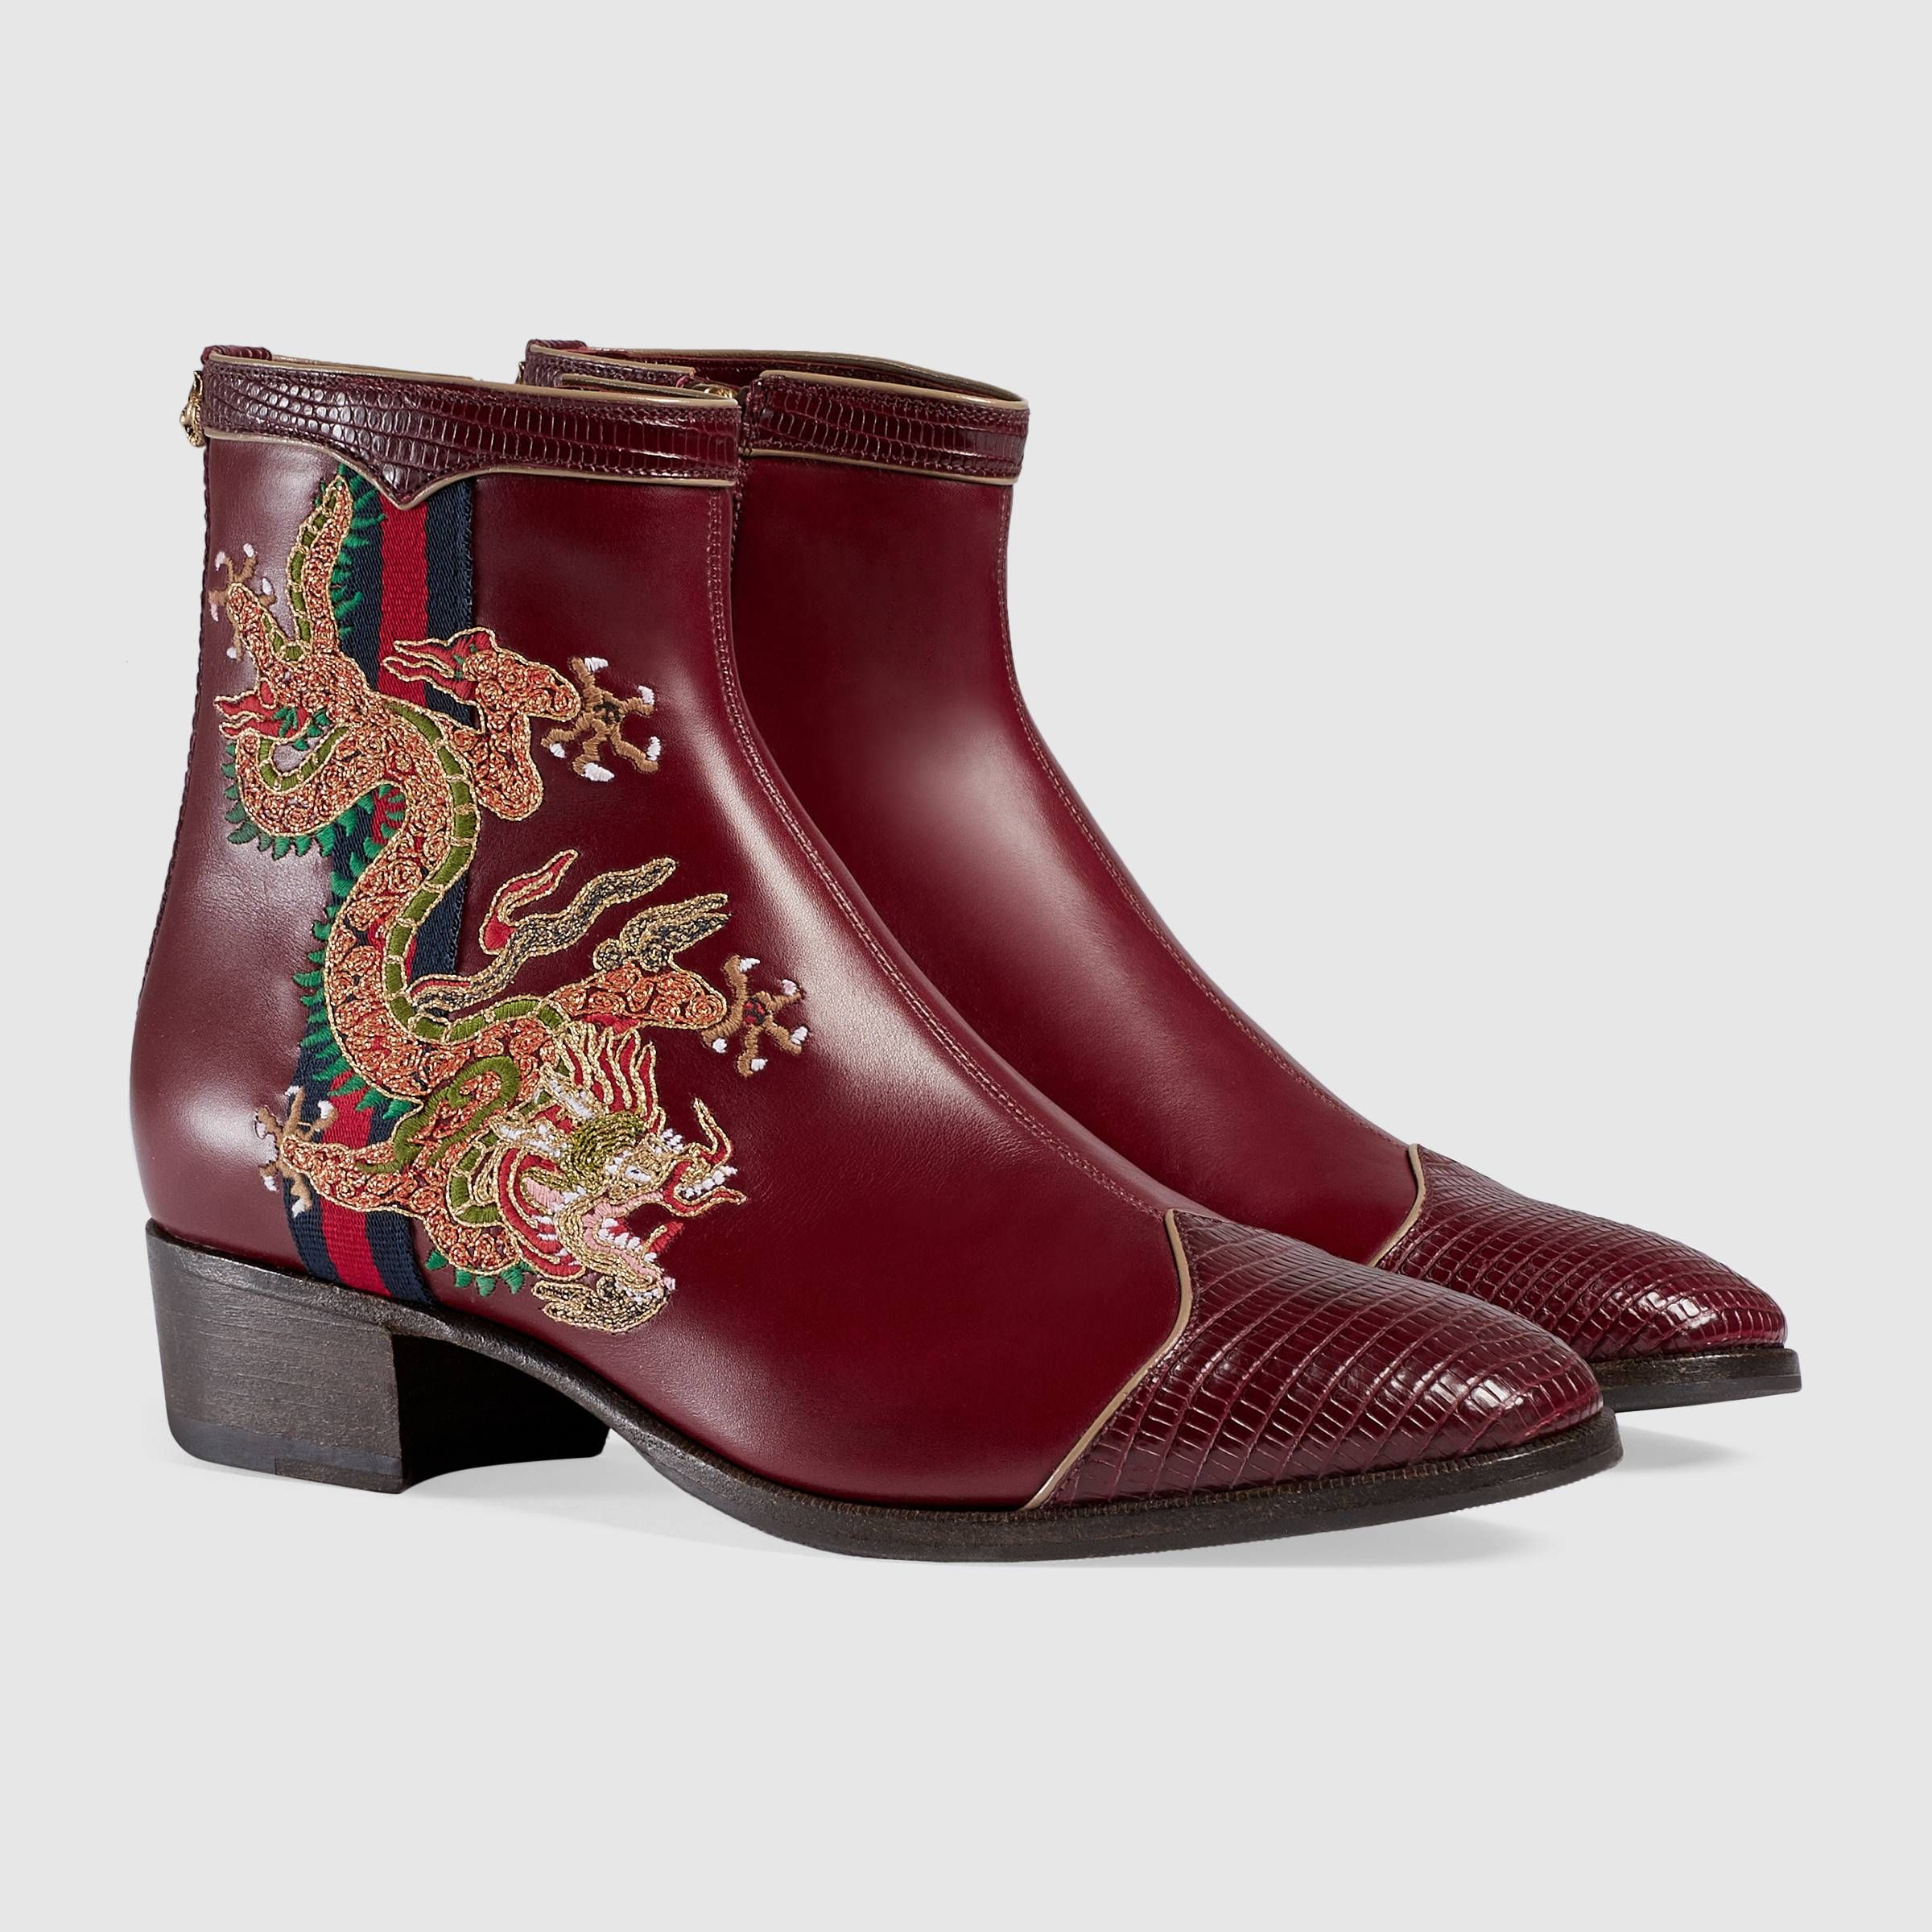 Gucci - Cruise 2018 | Leather boot with